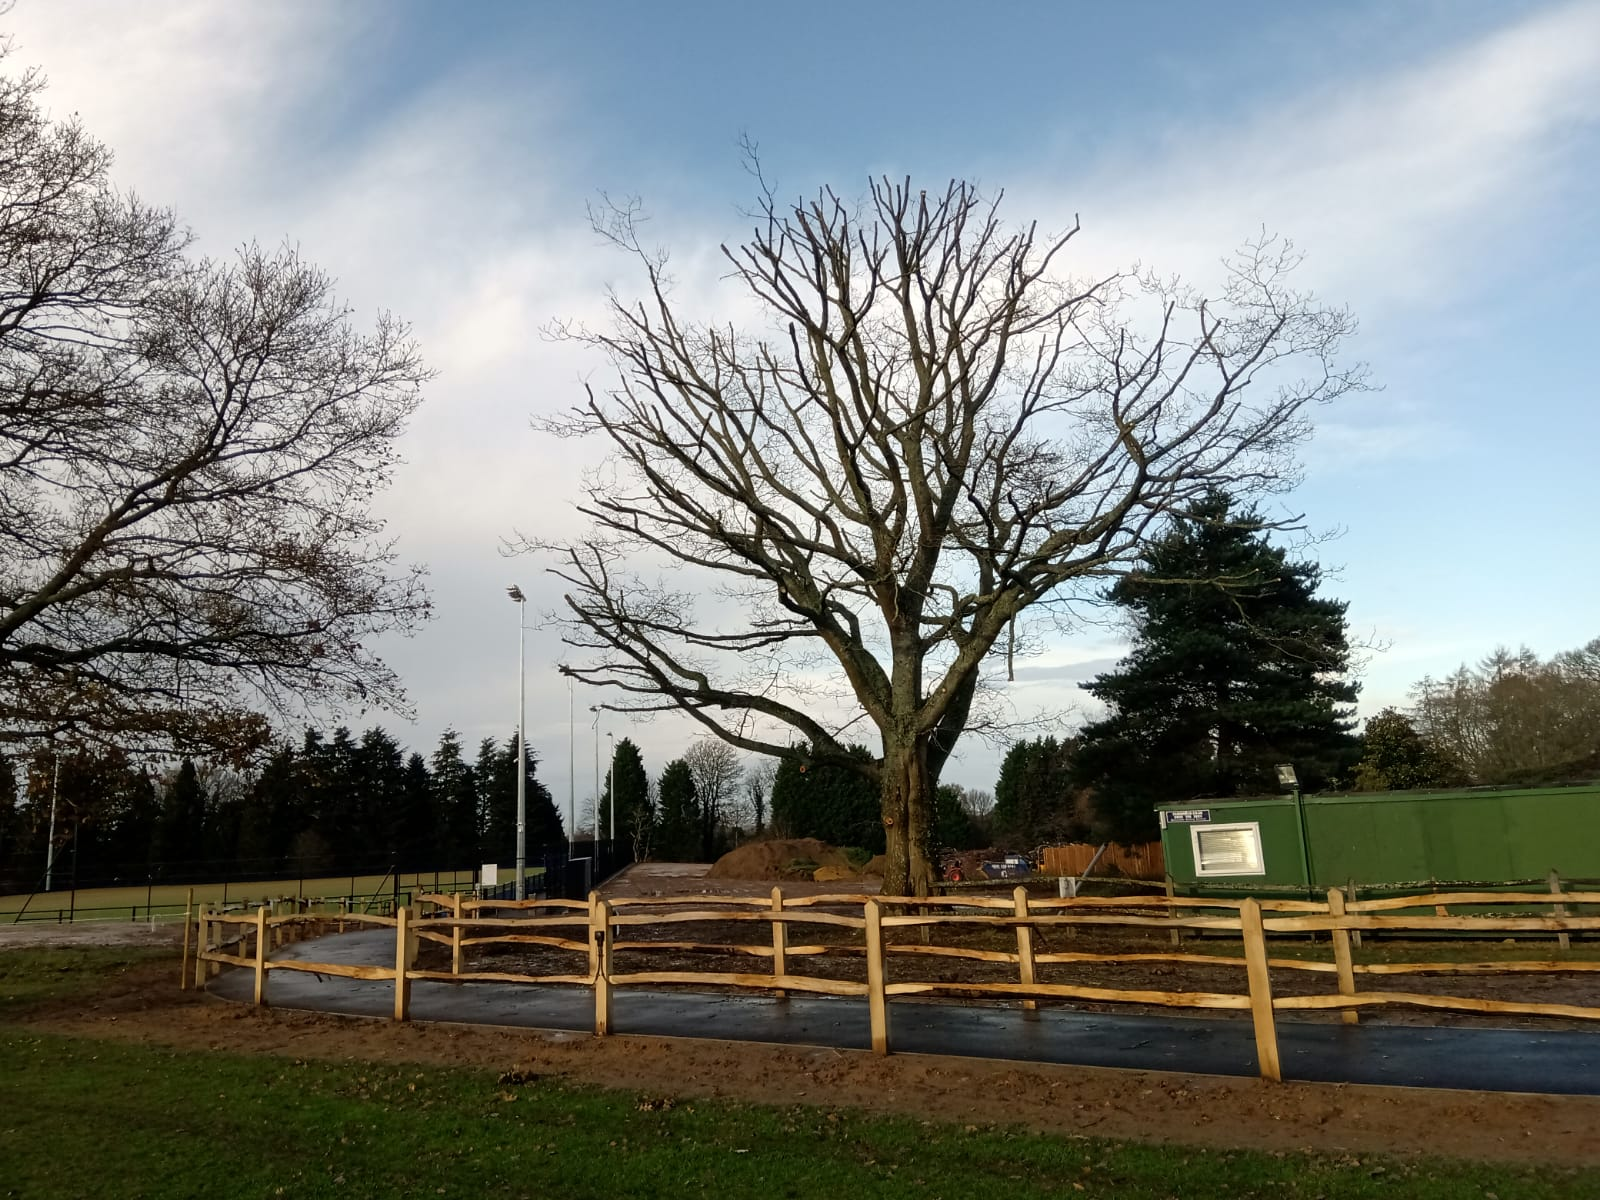 Tree Surrounded by Wooden Fencing